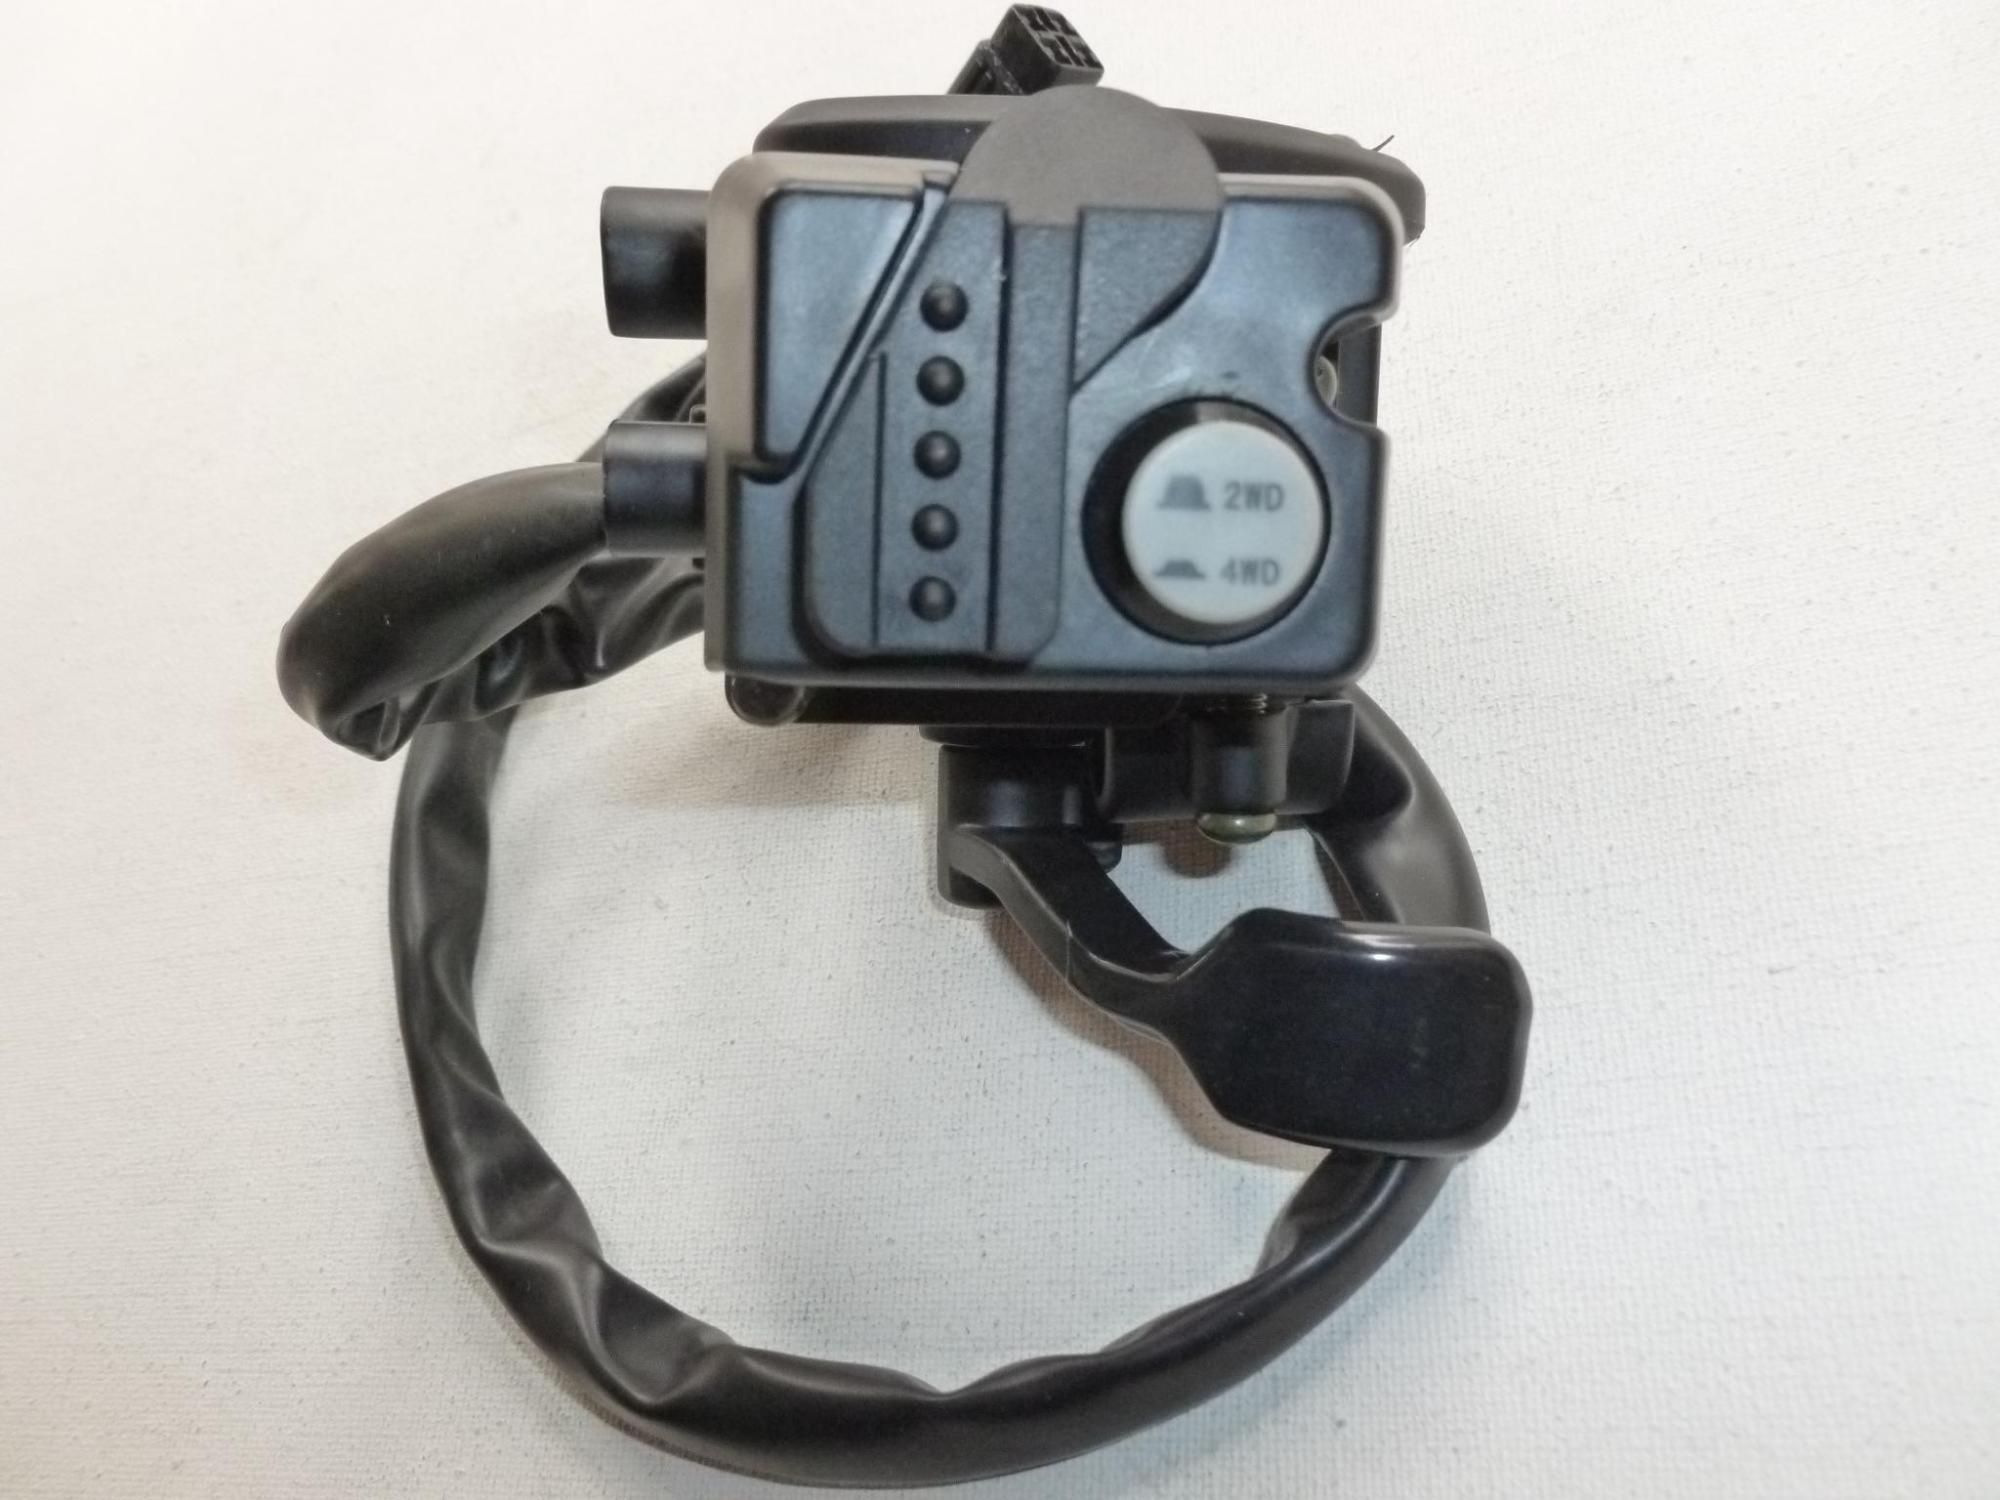 hight resolution of new grizzly 660 thumb throttle lever control 4x4 switch fits yamaha grizzly 660 4wd 2002 2008 oem atv oem atv parts from annkparts 81 21 dhgate com